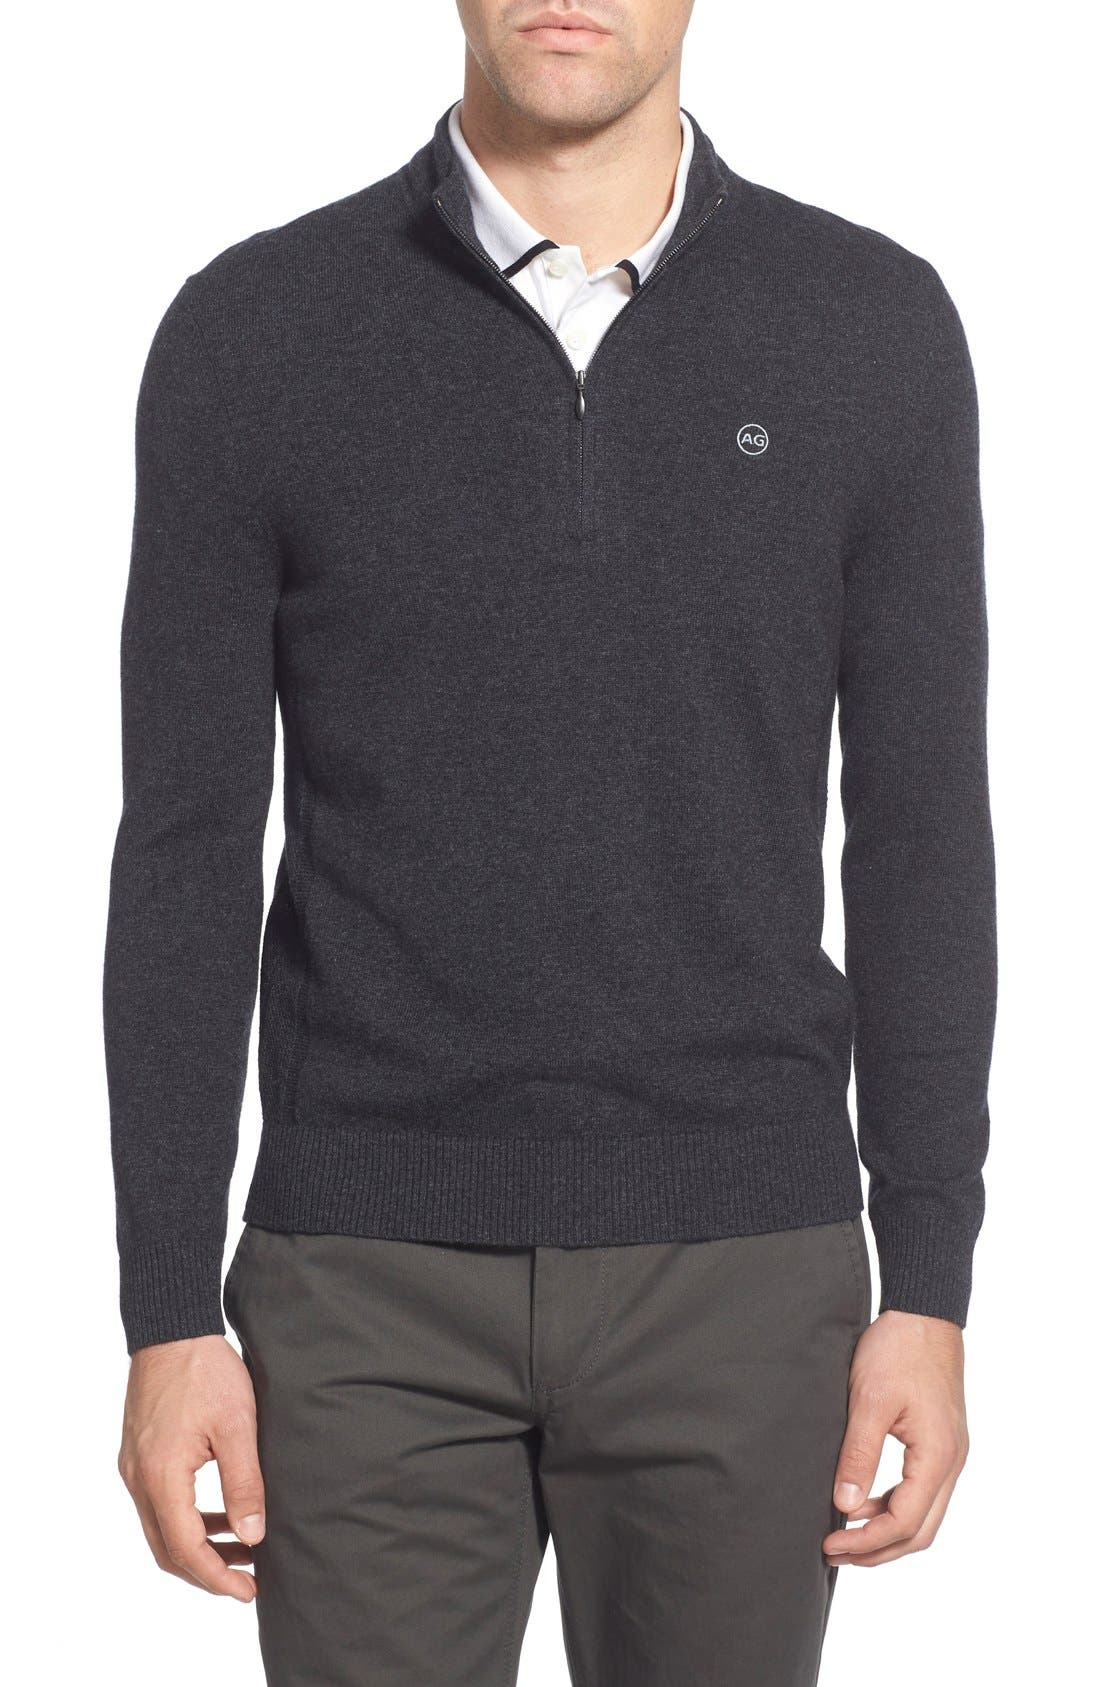 AG Green Label 'Baker' Slim Fit Wool & Cashmere Half Zip Sweater